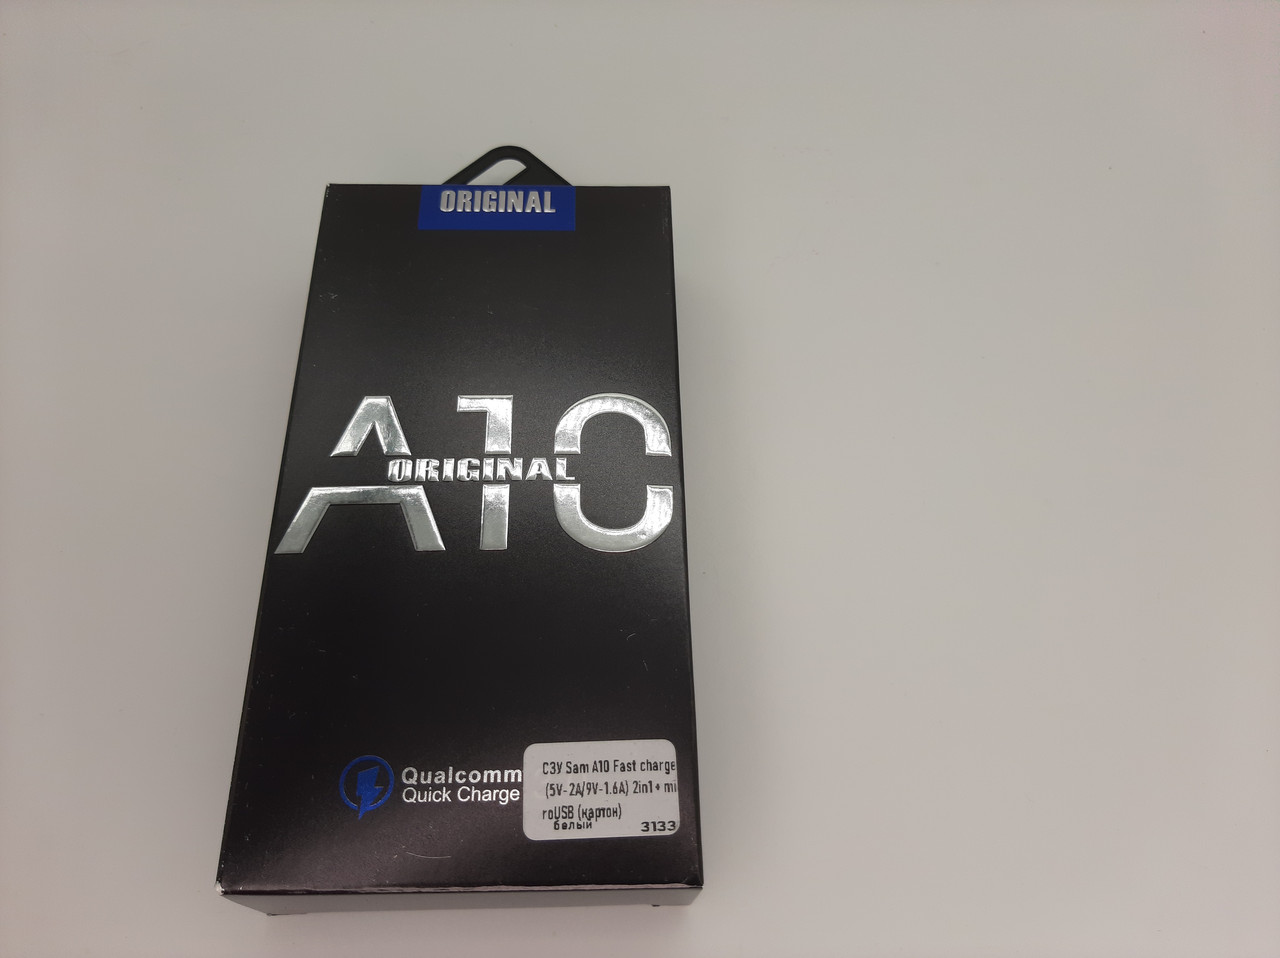 СЗУ Samsung A10 Fast charger (5V-2A/9V-1.6A) 2in1 + microUSB (картон) (белый)